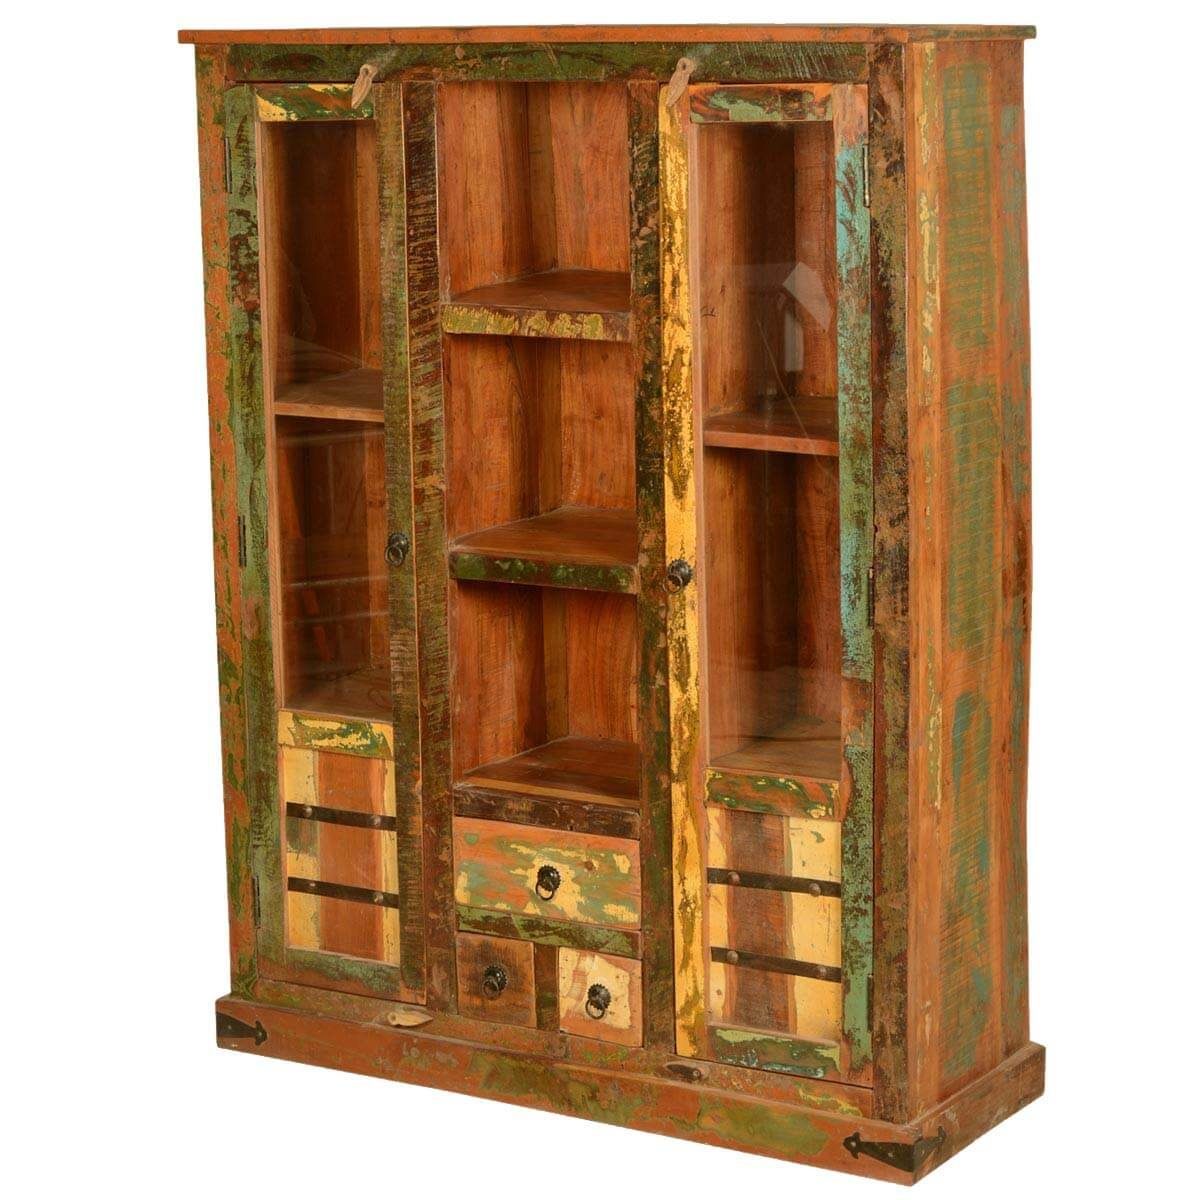 Speckled Rustic Reclaimed Wood Display Cabinet W Glass Doors